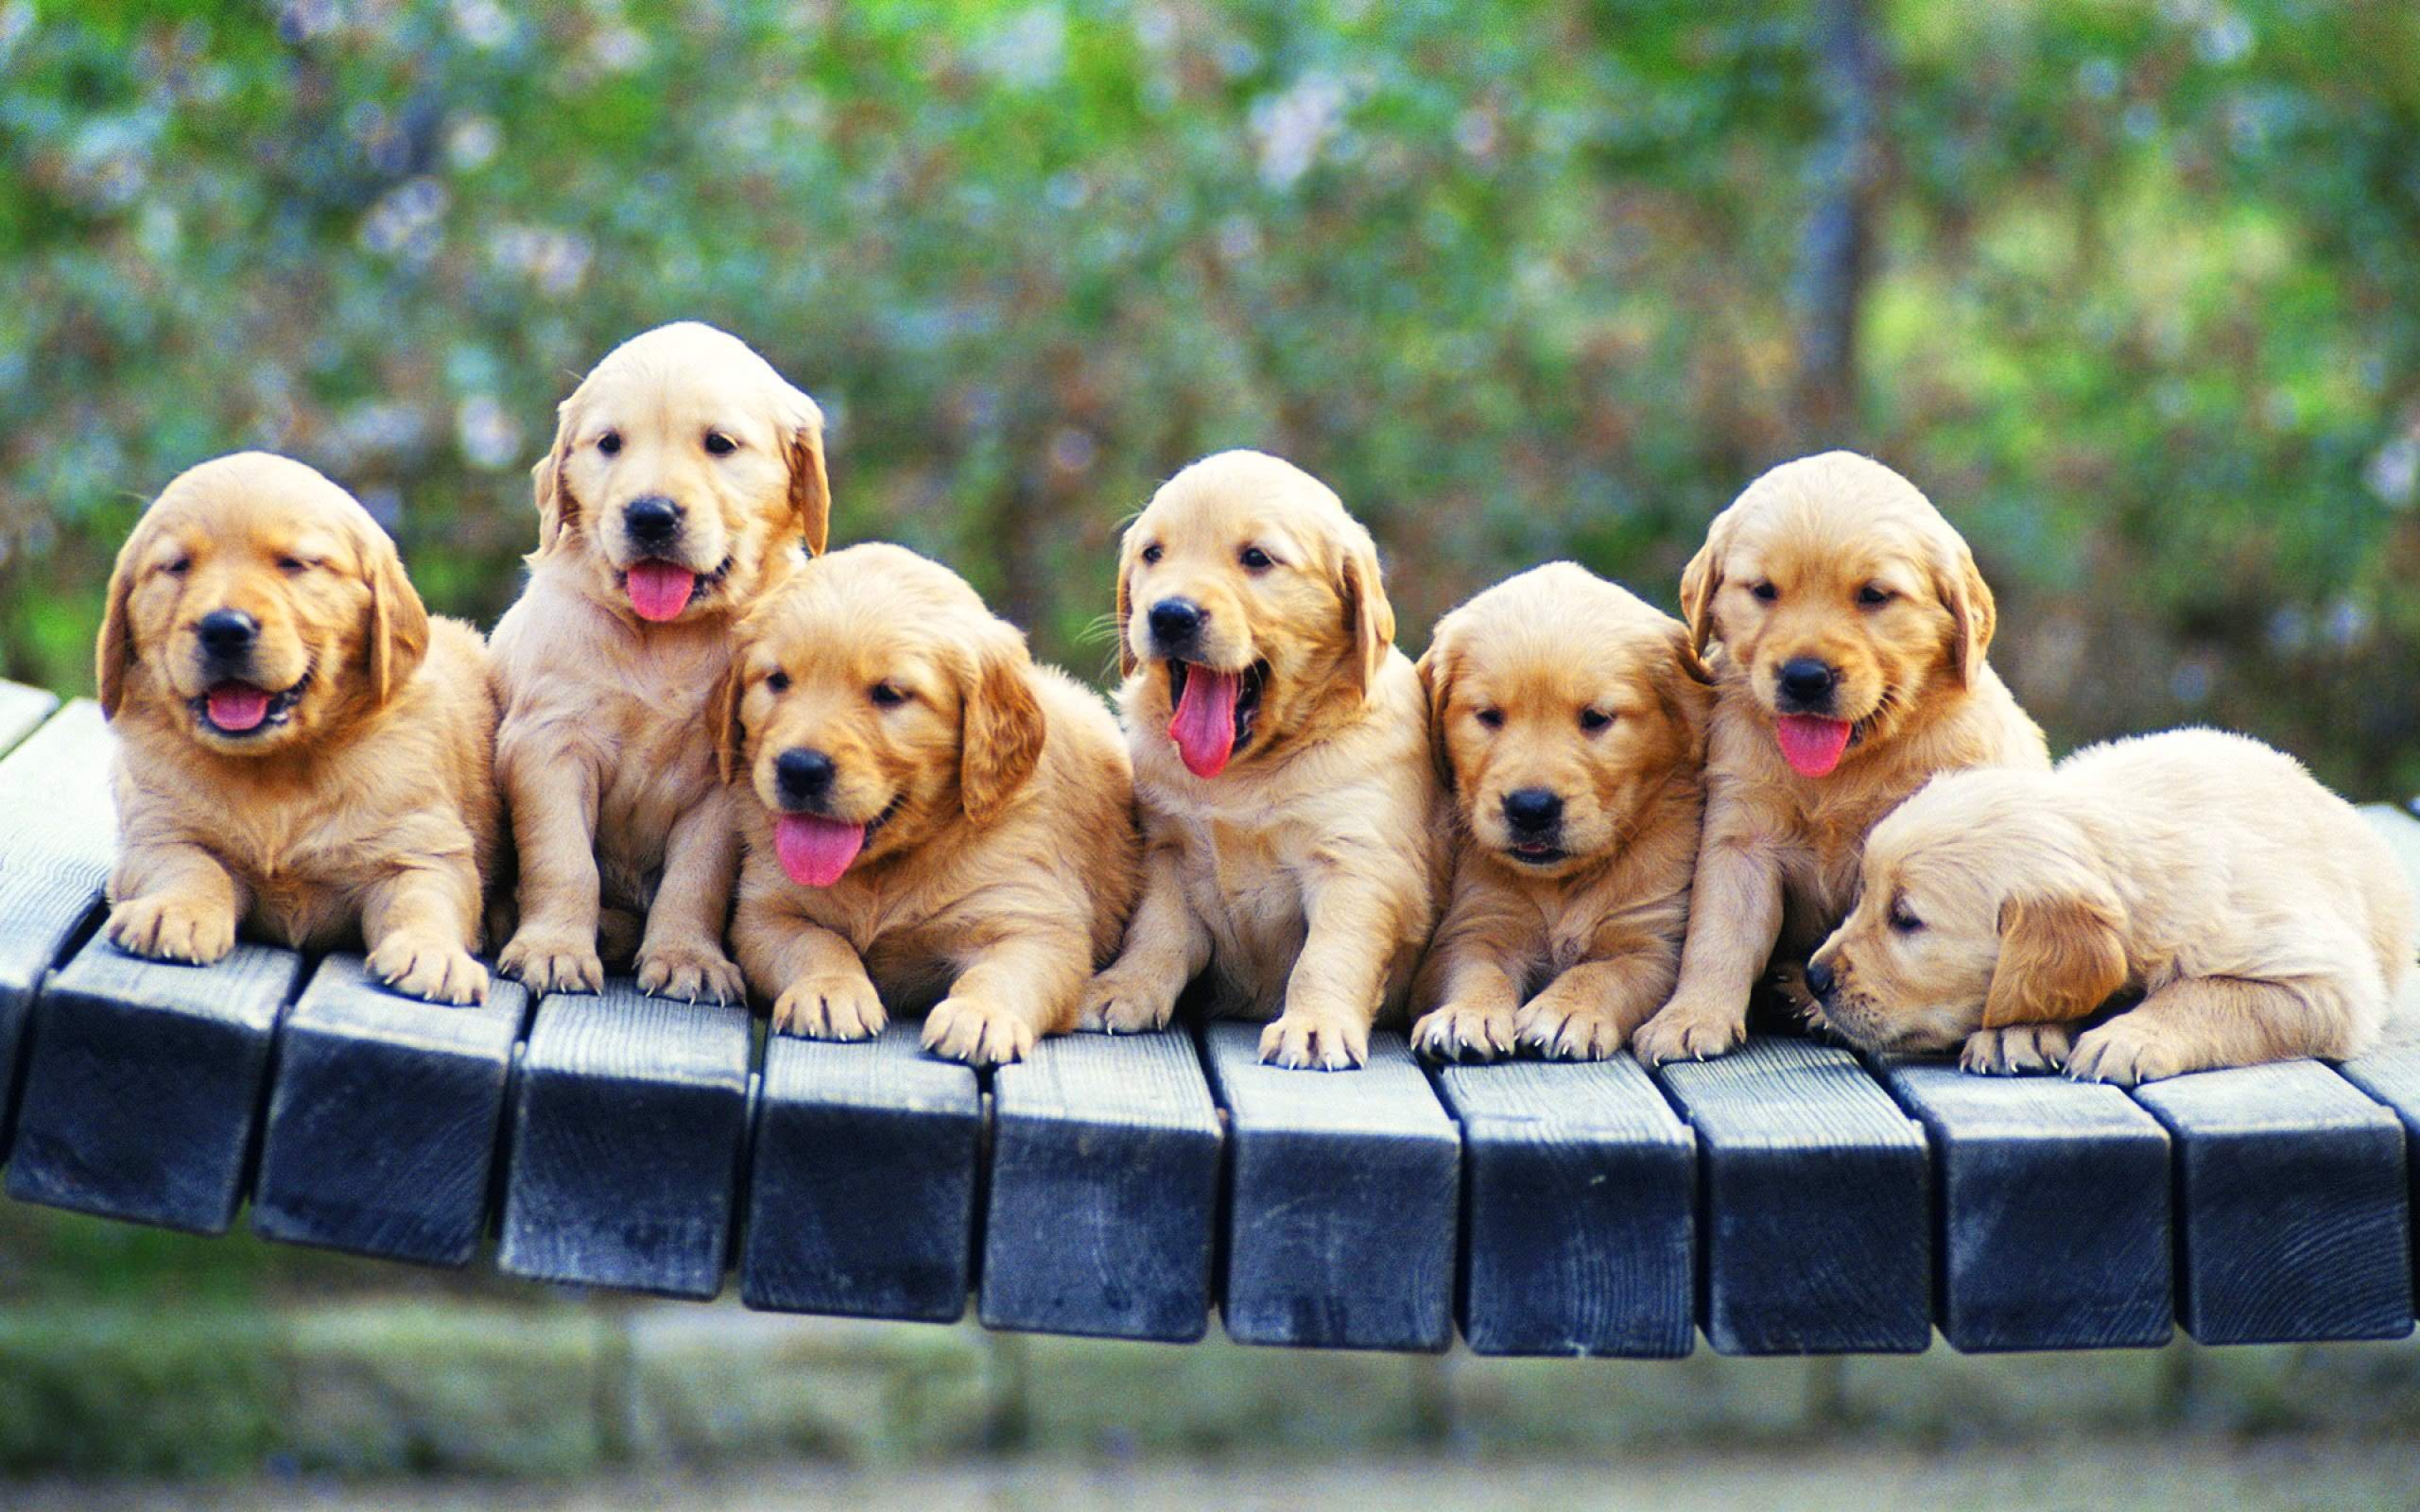 Puppy Wallpaper ① Download Free Cool Backgrounds For Desktop